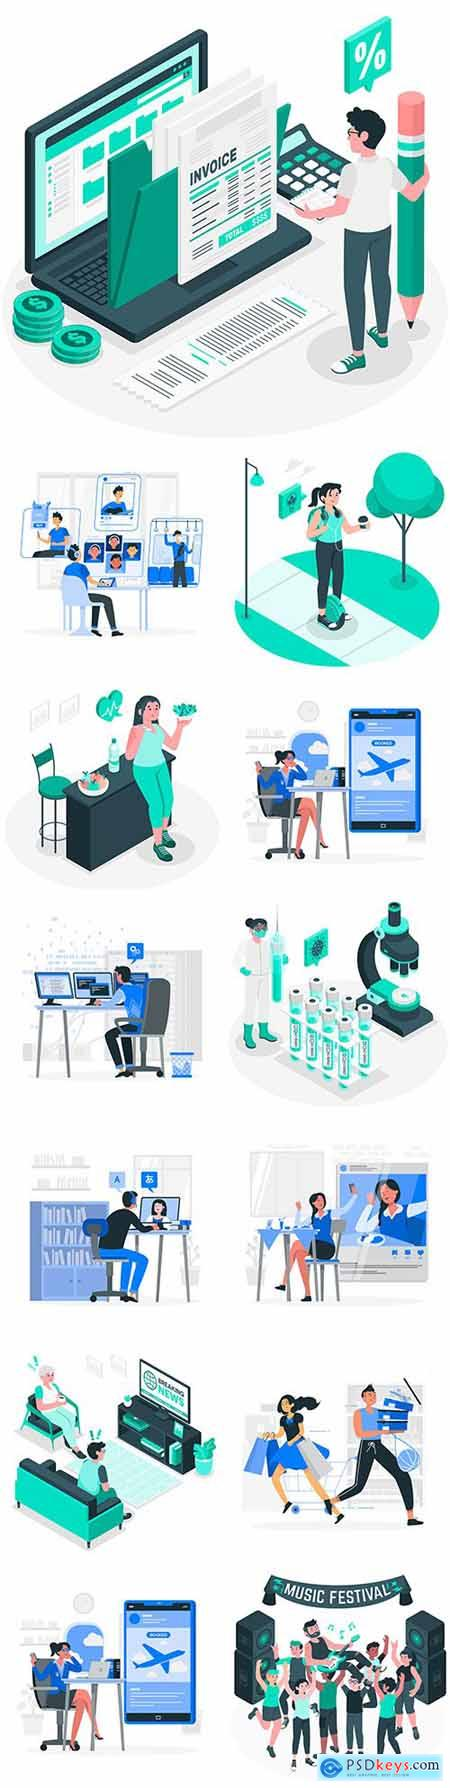 Business people of different professions illustration concept